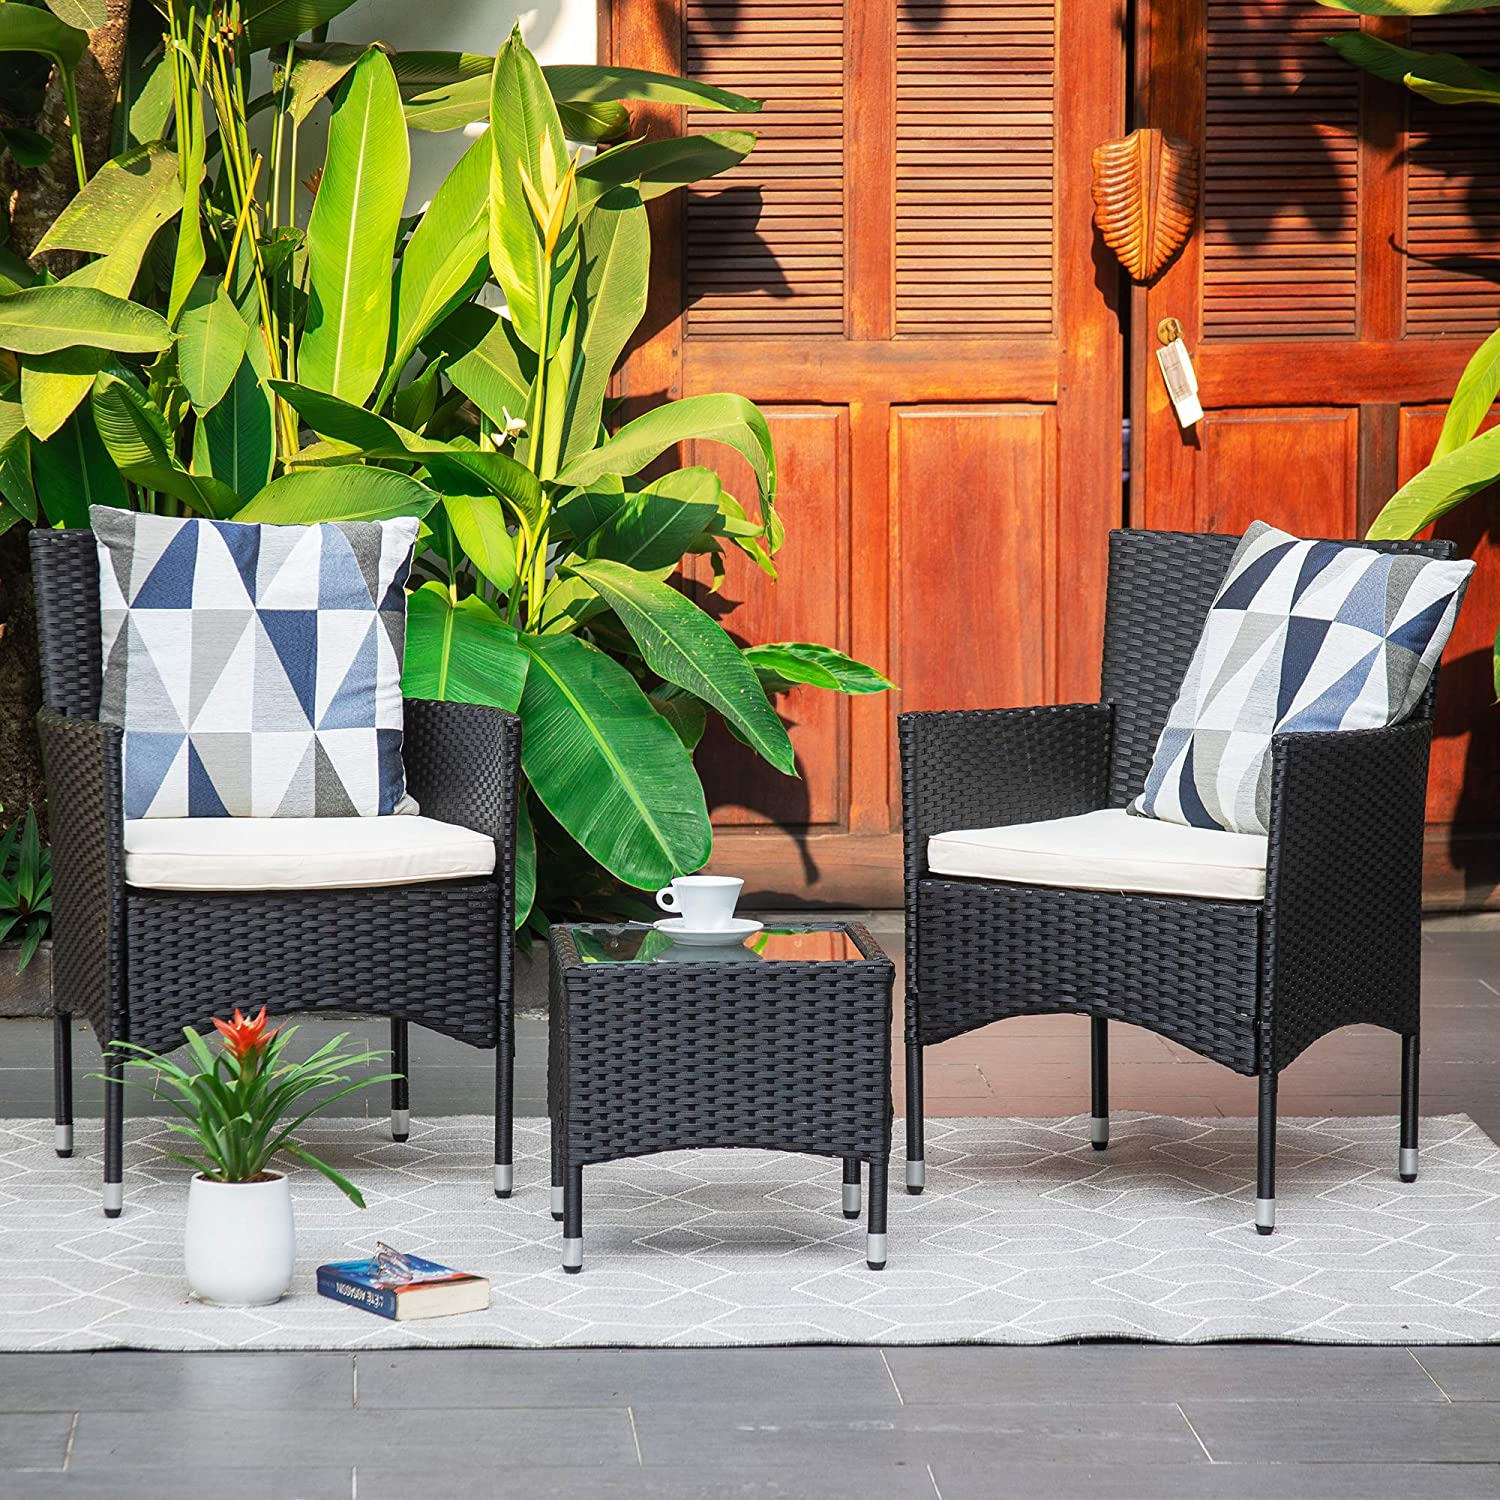 M&W 3 Pieces Patio Furniture Set, Outdoor Chairs and Coffee Table, PE Rattan Wicker Bistro Table Set for Balcony, Lawn, Garden, Backyard, Beige (Throw Pillow NOT Included)